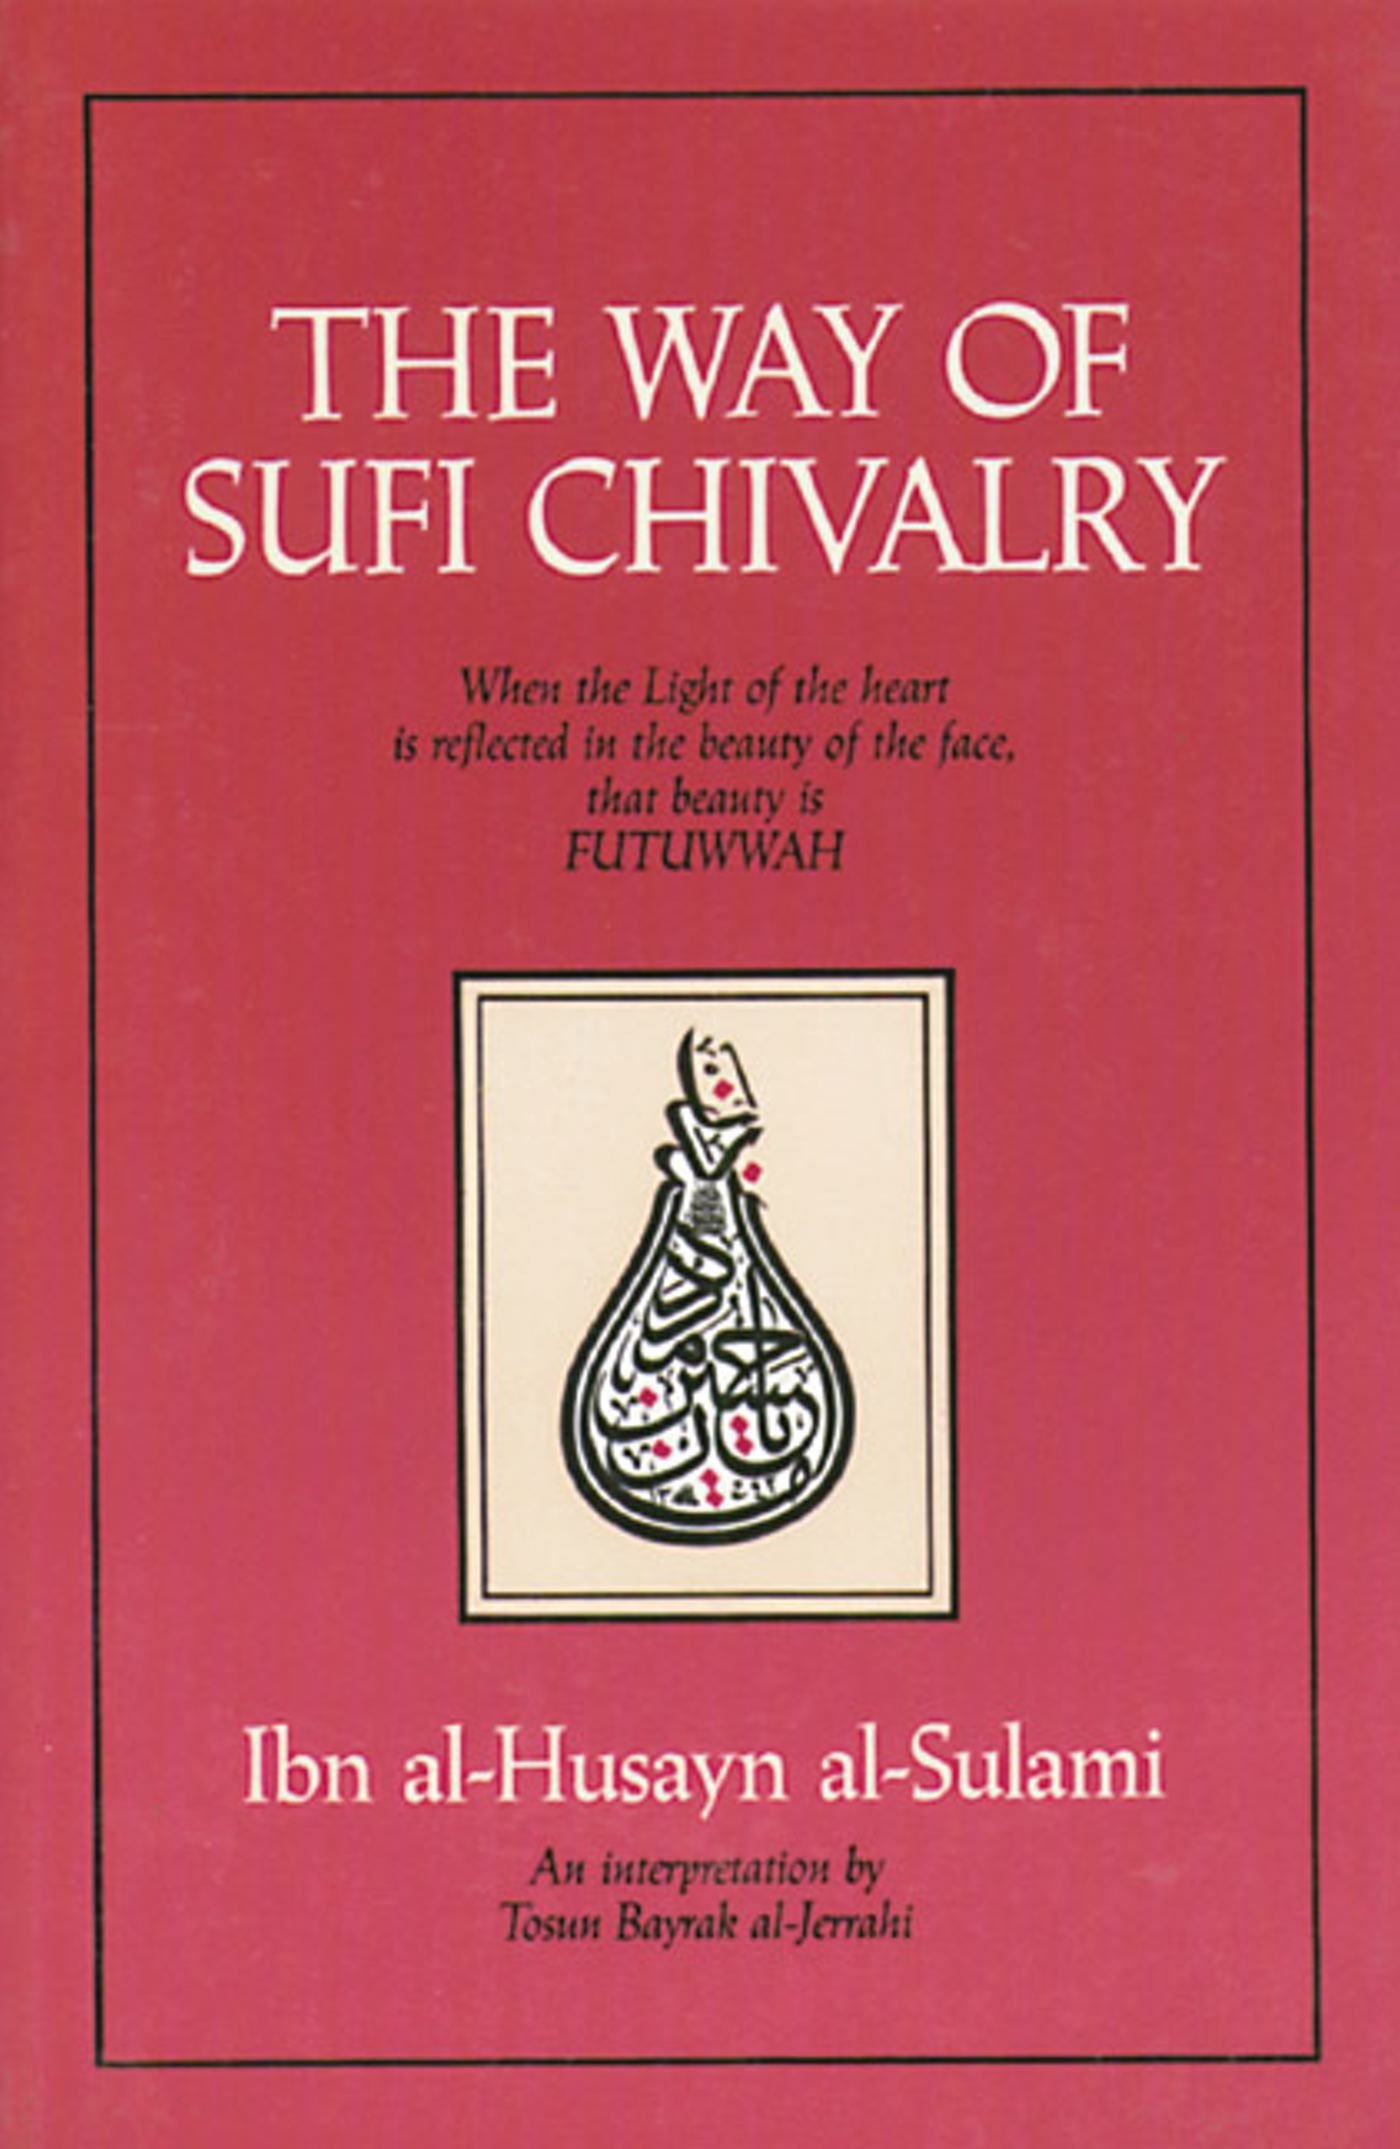 The way of sufi chivalry 9780892813179 hr